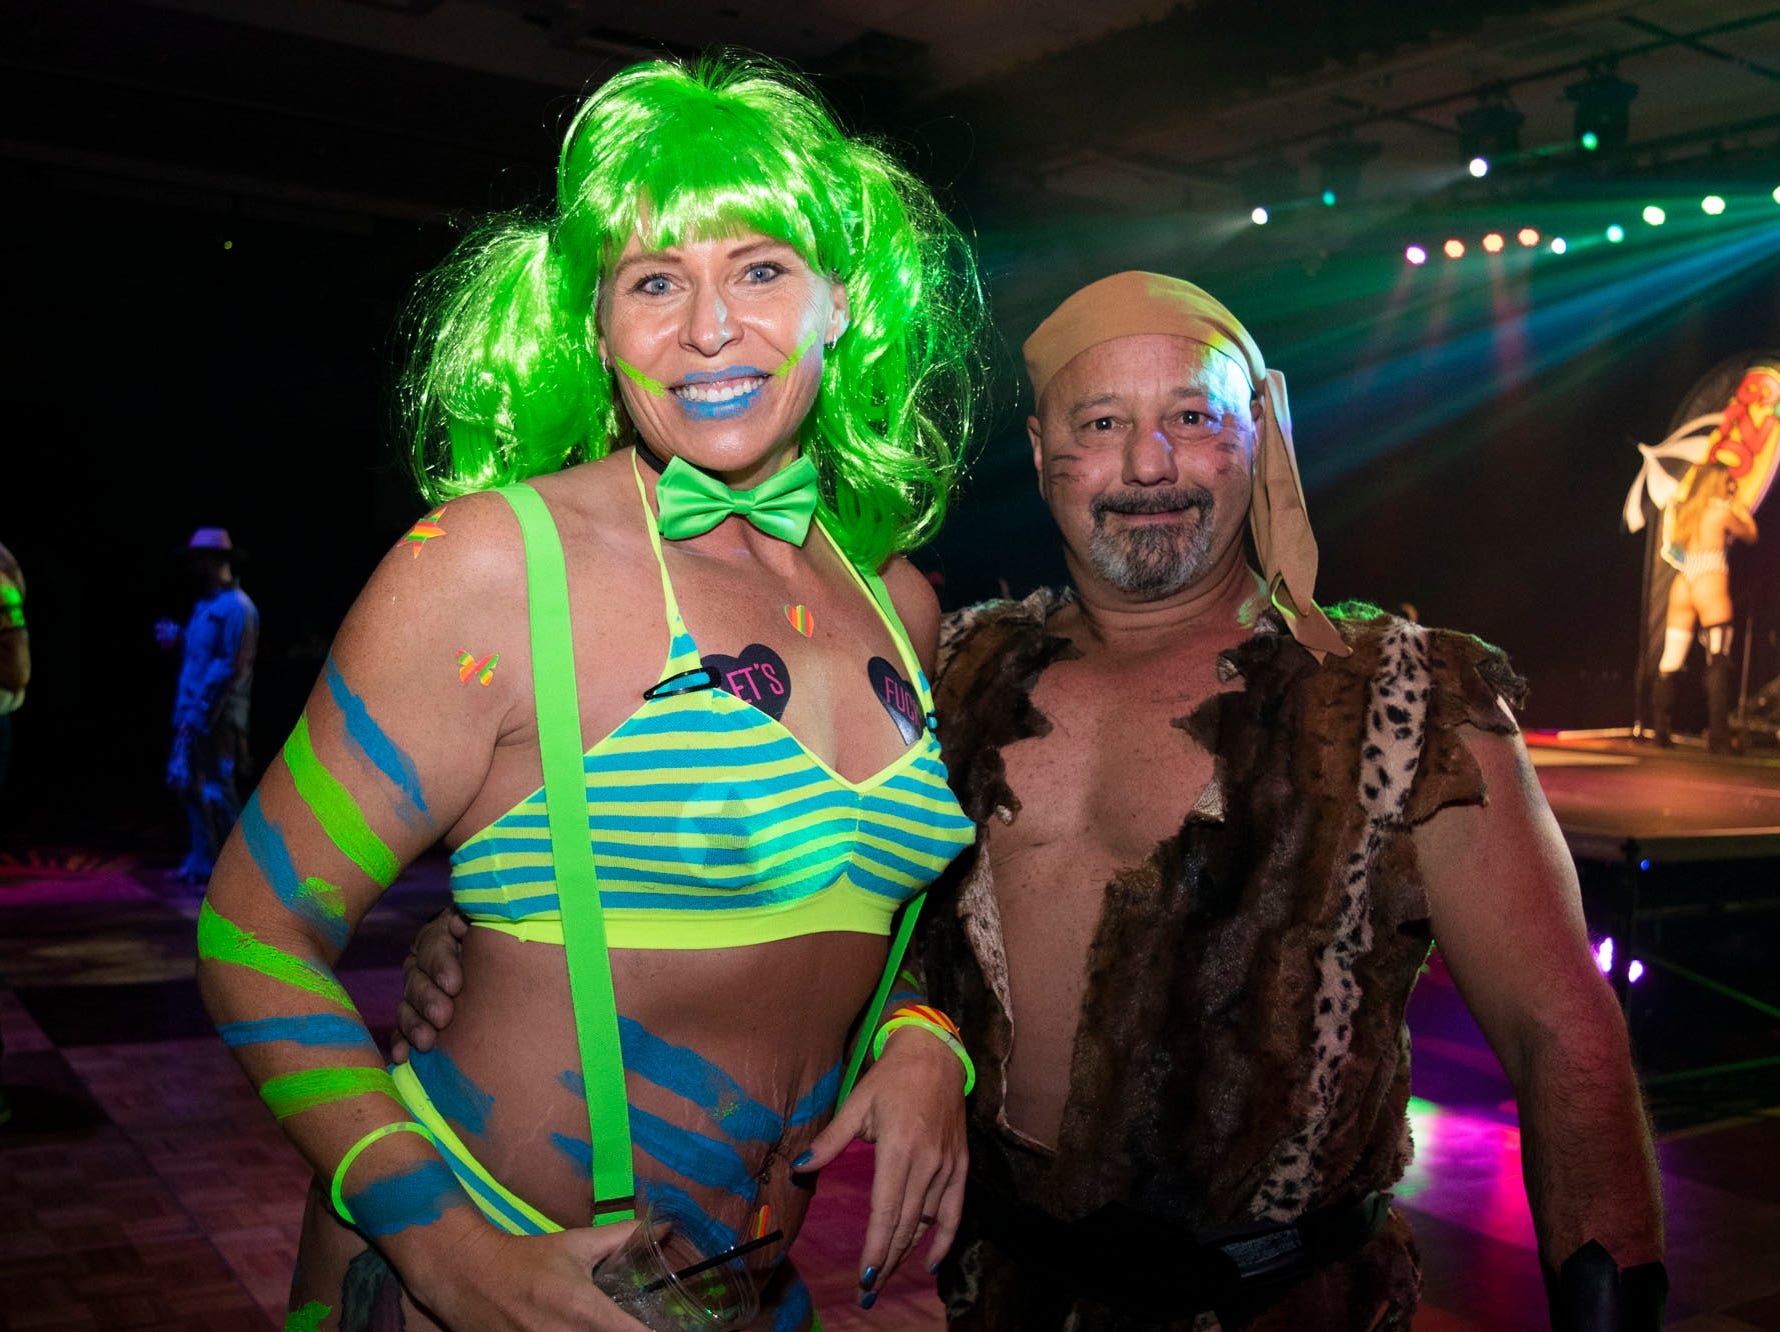 Amy Trelease and Anthony Pinto attend the Wild Erotic Ball on Friday, Oct. 26, 2018, inside the Silver Legacy Casino. Reno, Nev.